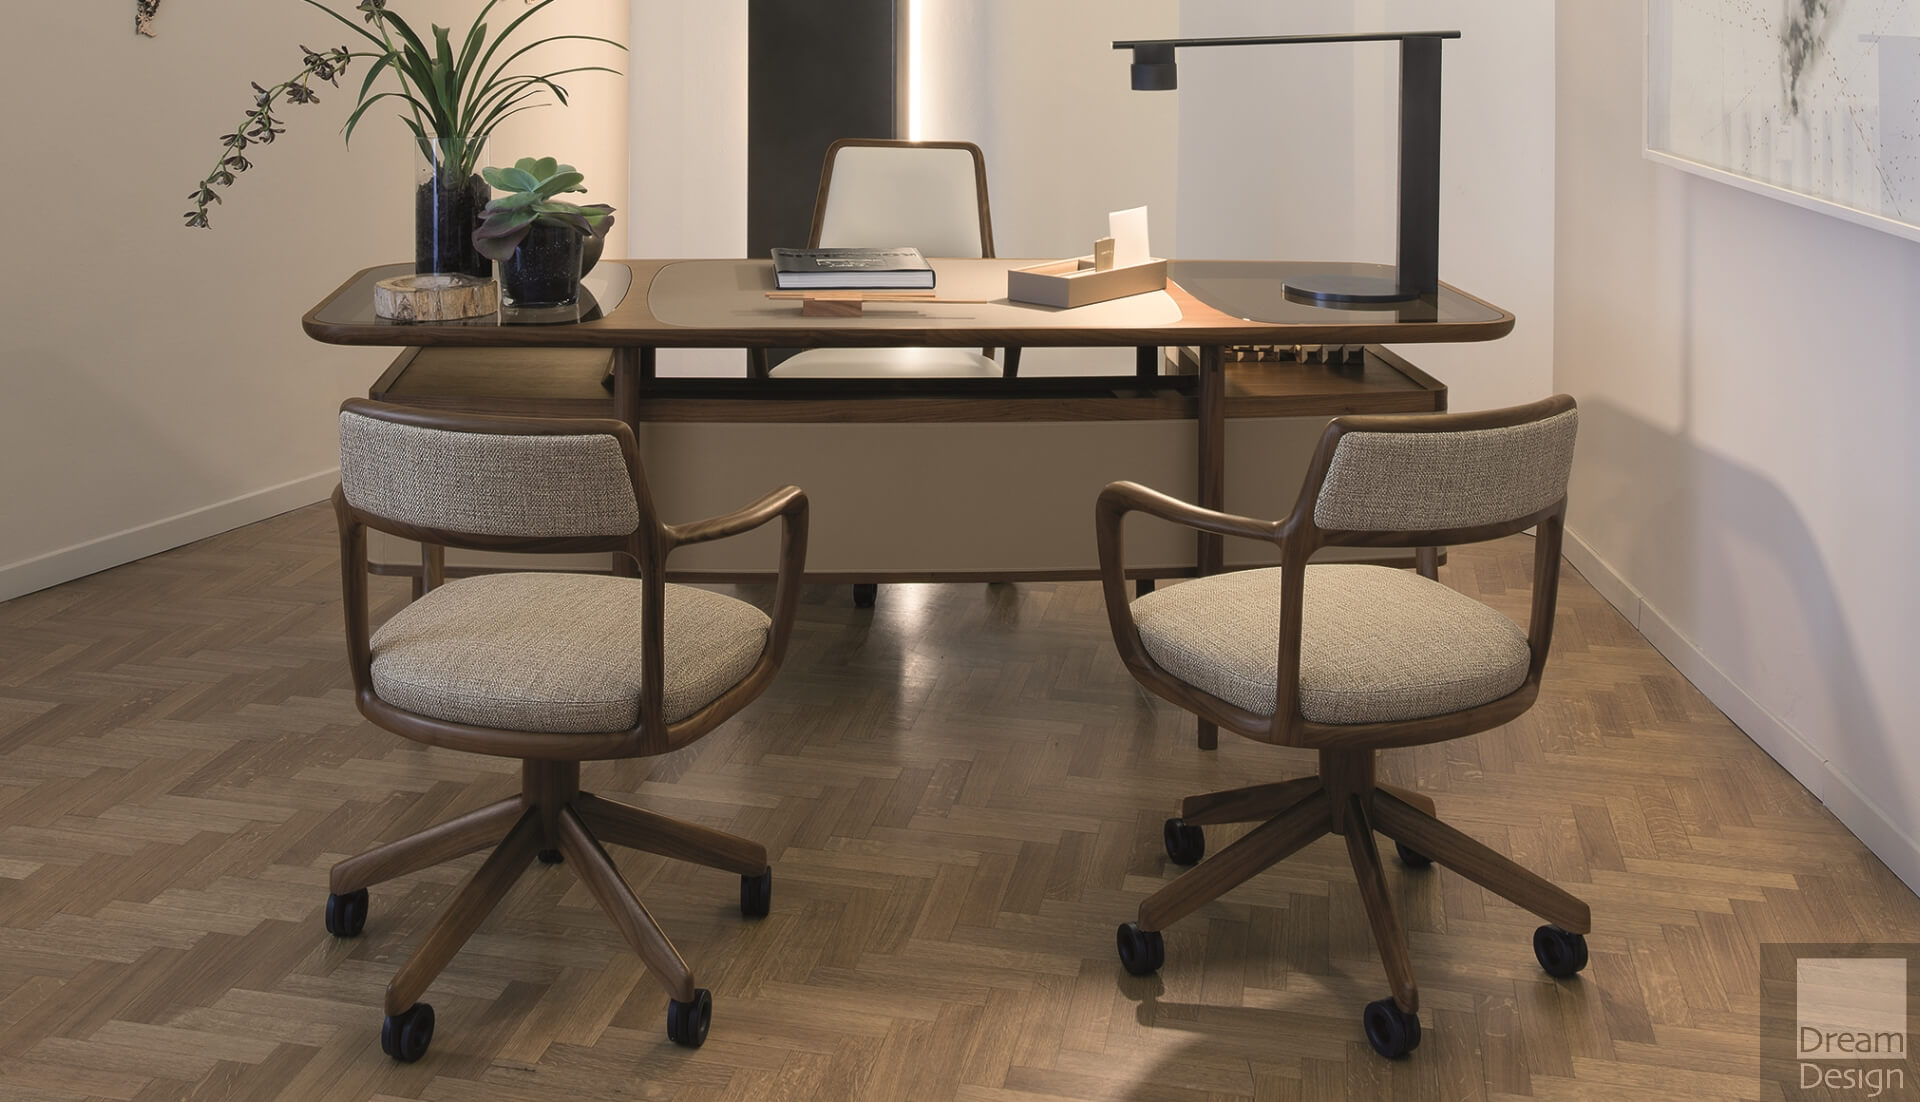 Giorgetti Mogul Desk by Roberto Lazzeroni - Everything But Ordinary